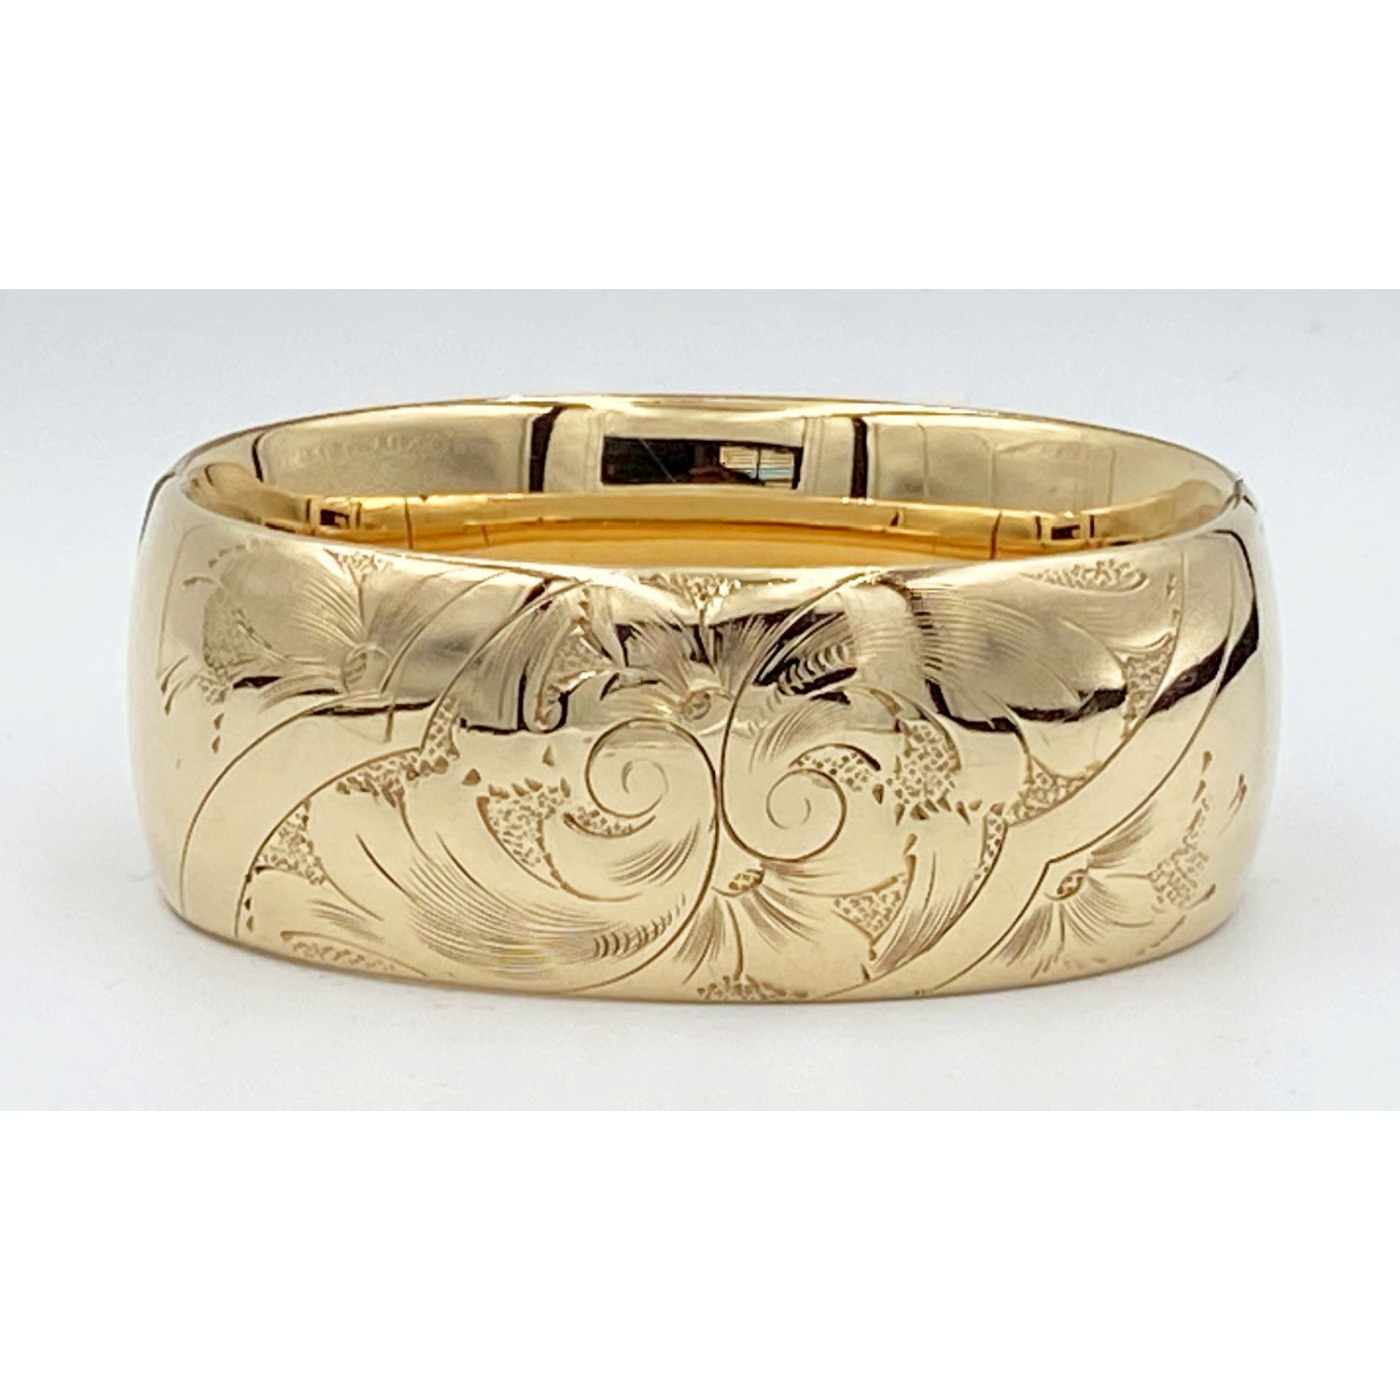 Lovely Wide Swirls Gold-Filled Engagement Bangle - Larger